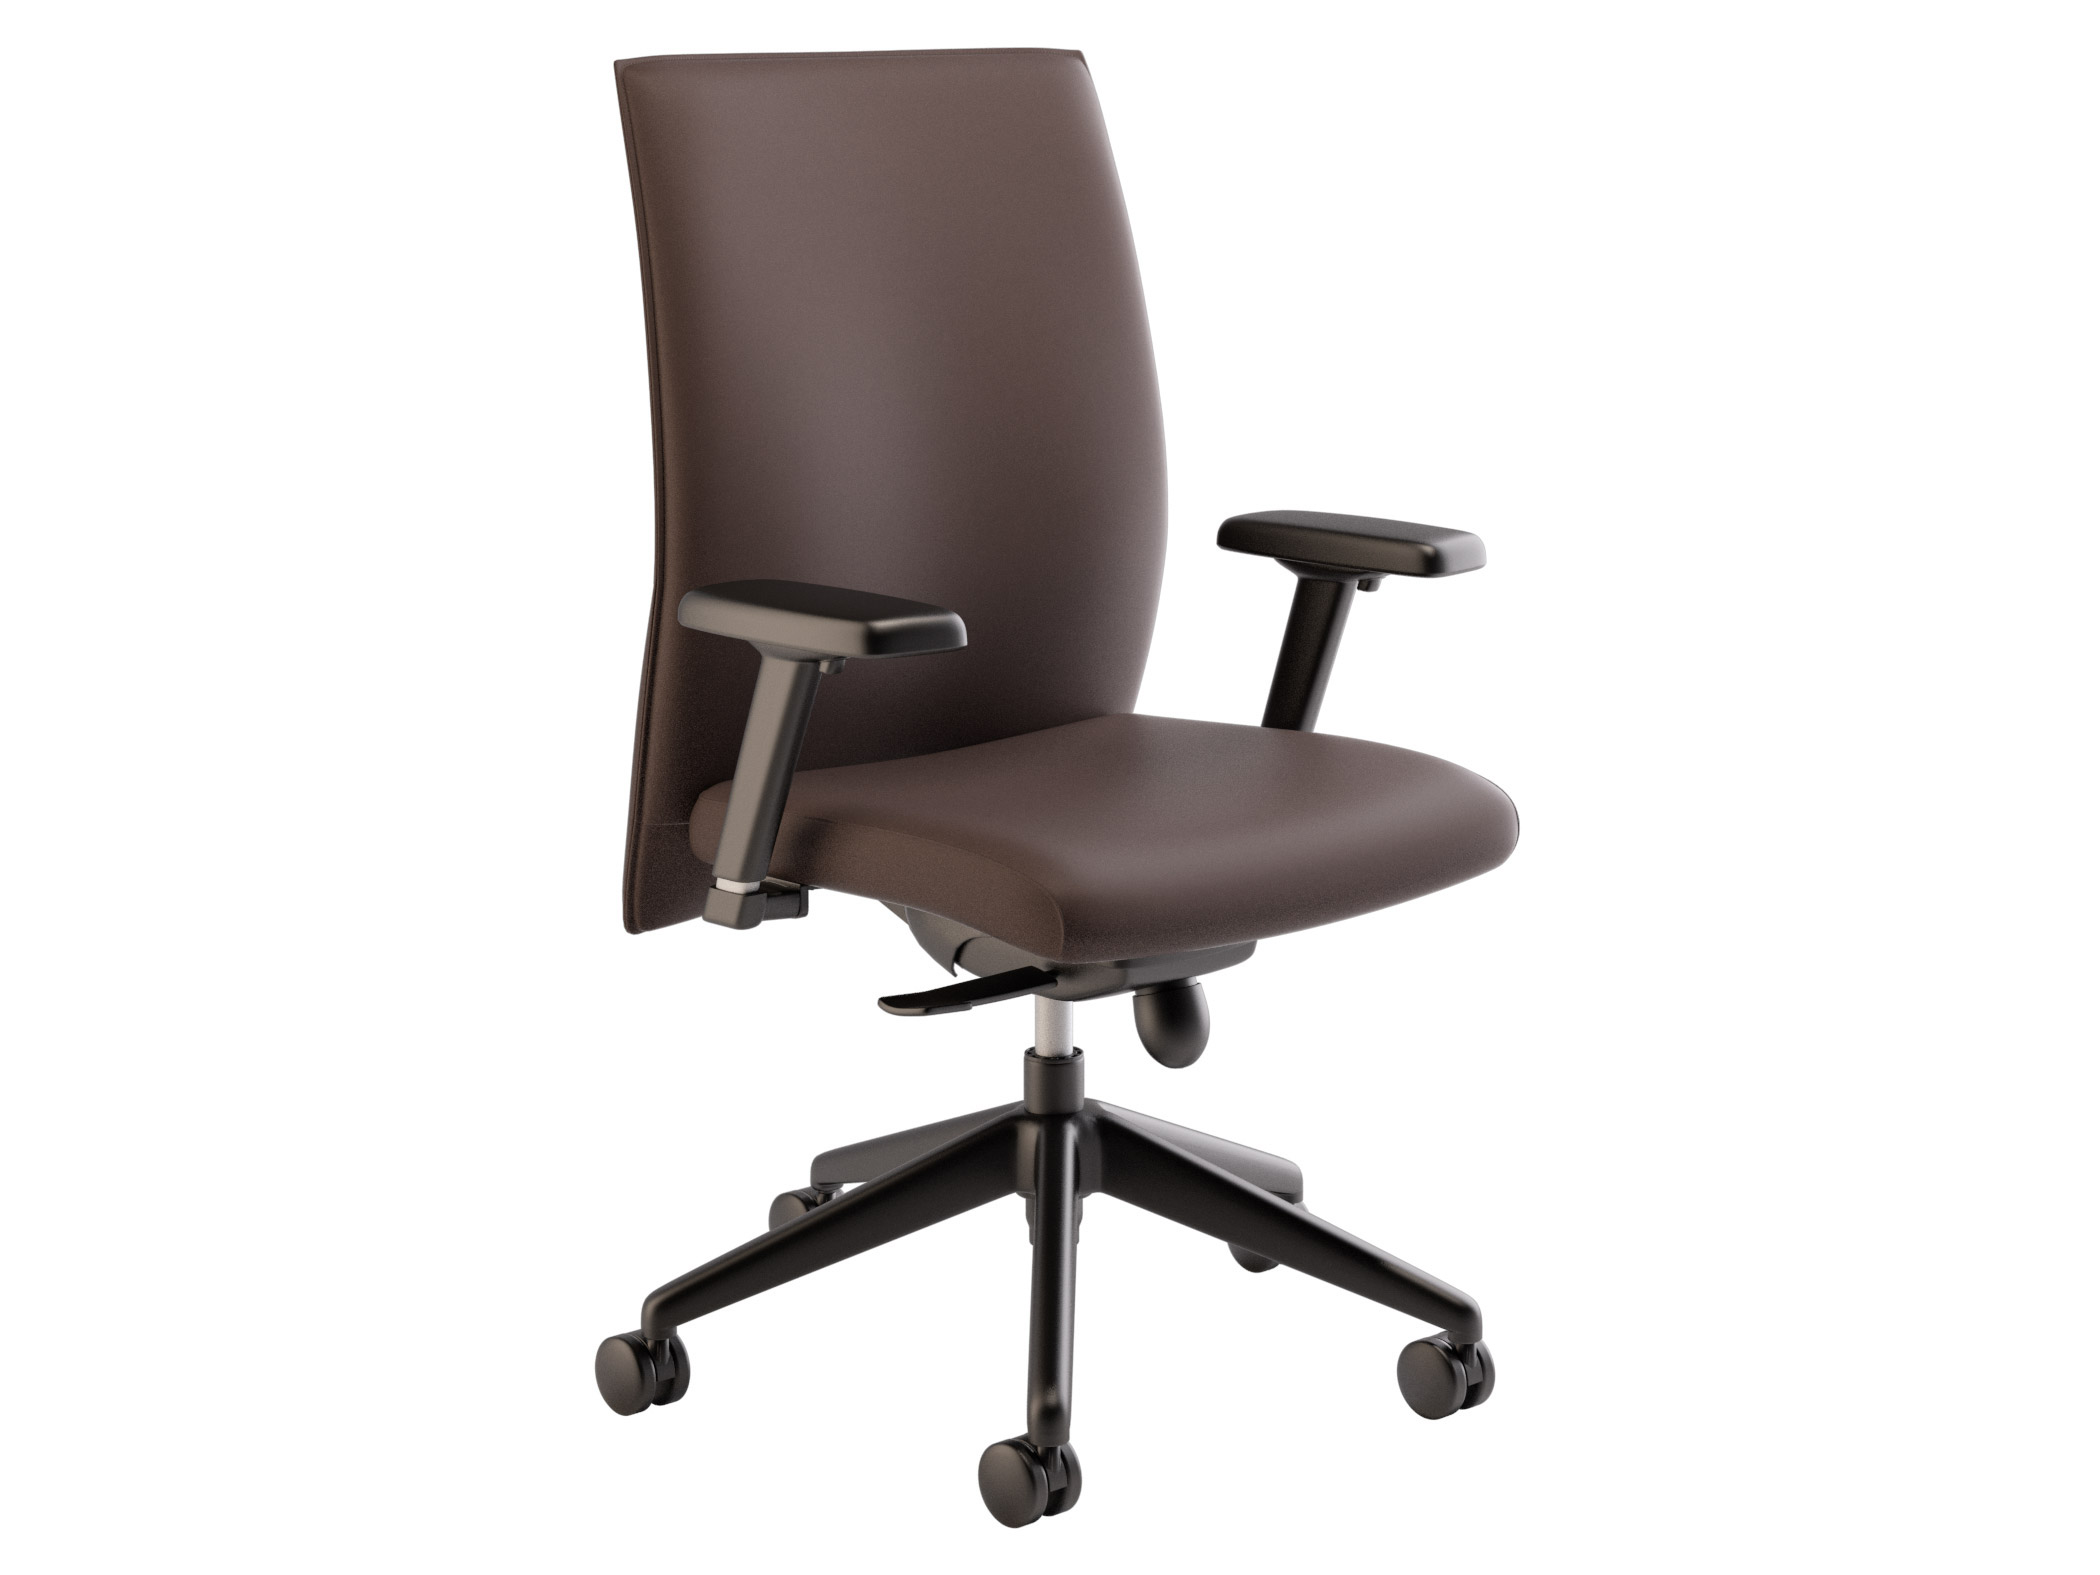 Chairs For Office #CEL-7160-B-TA